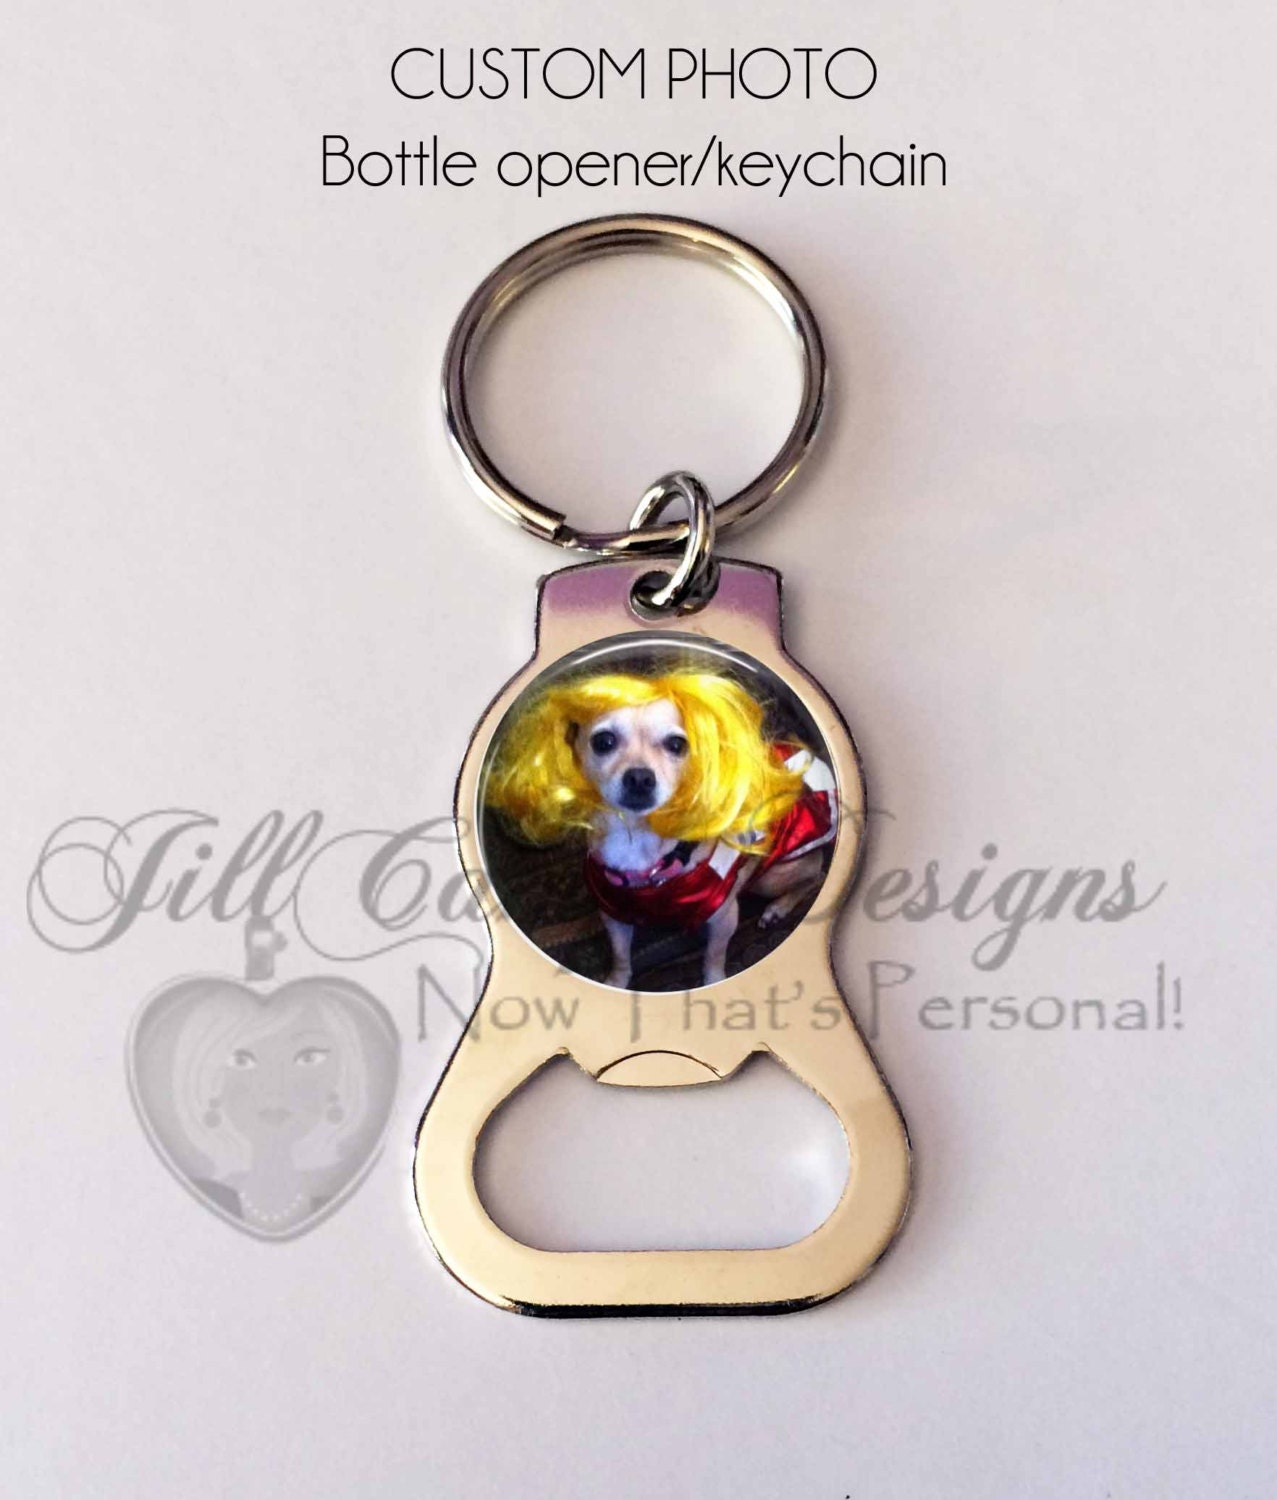 personalized bottle opener keychain photo key chain photo. Black Bedroom Furniture Sets. Home Design Ideas